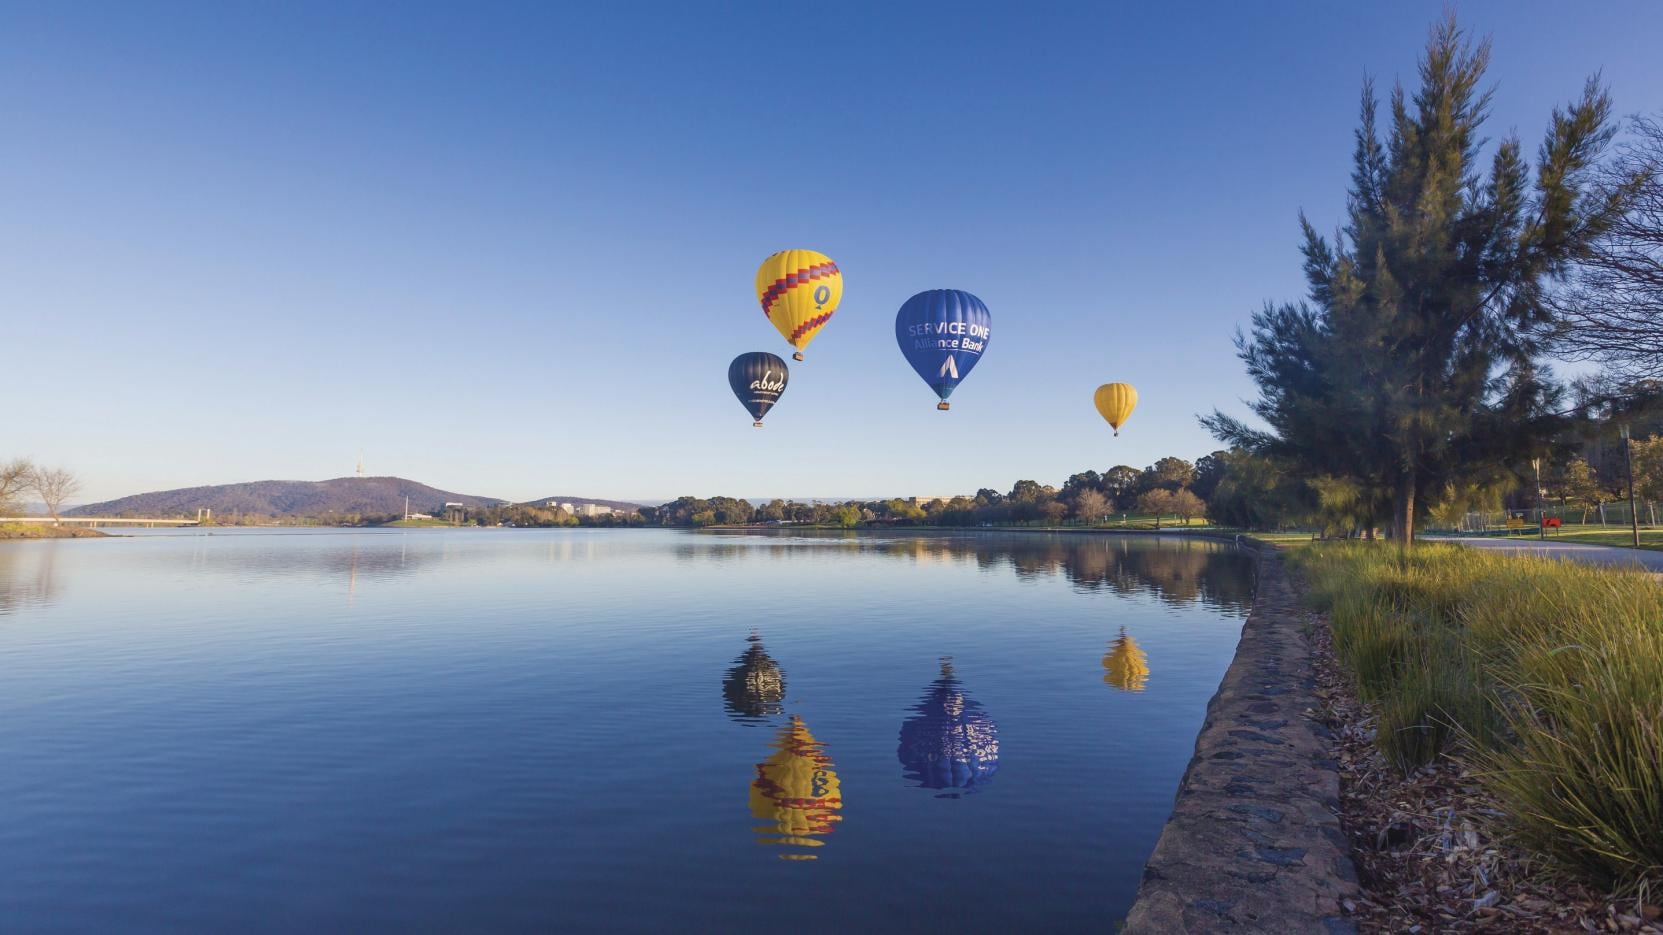 Hot Air Ballooning, Lake Burley Griffin, Canberra, ACT. © Visit Canberra